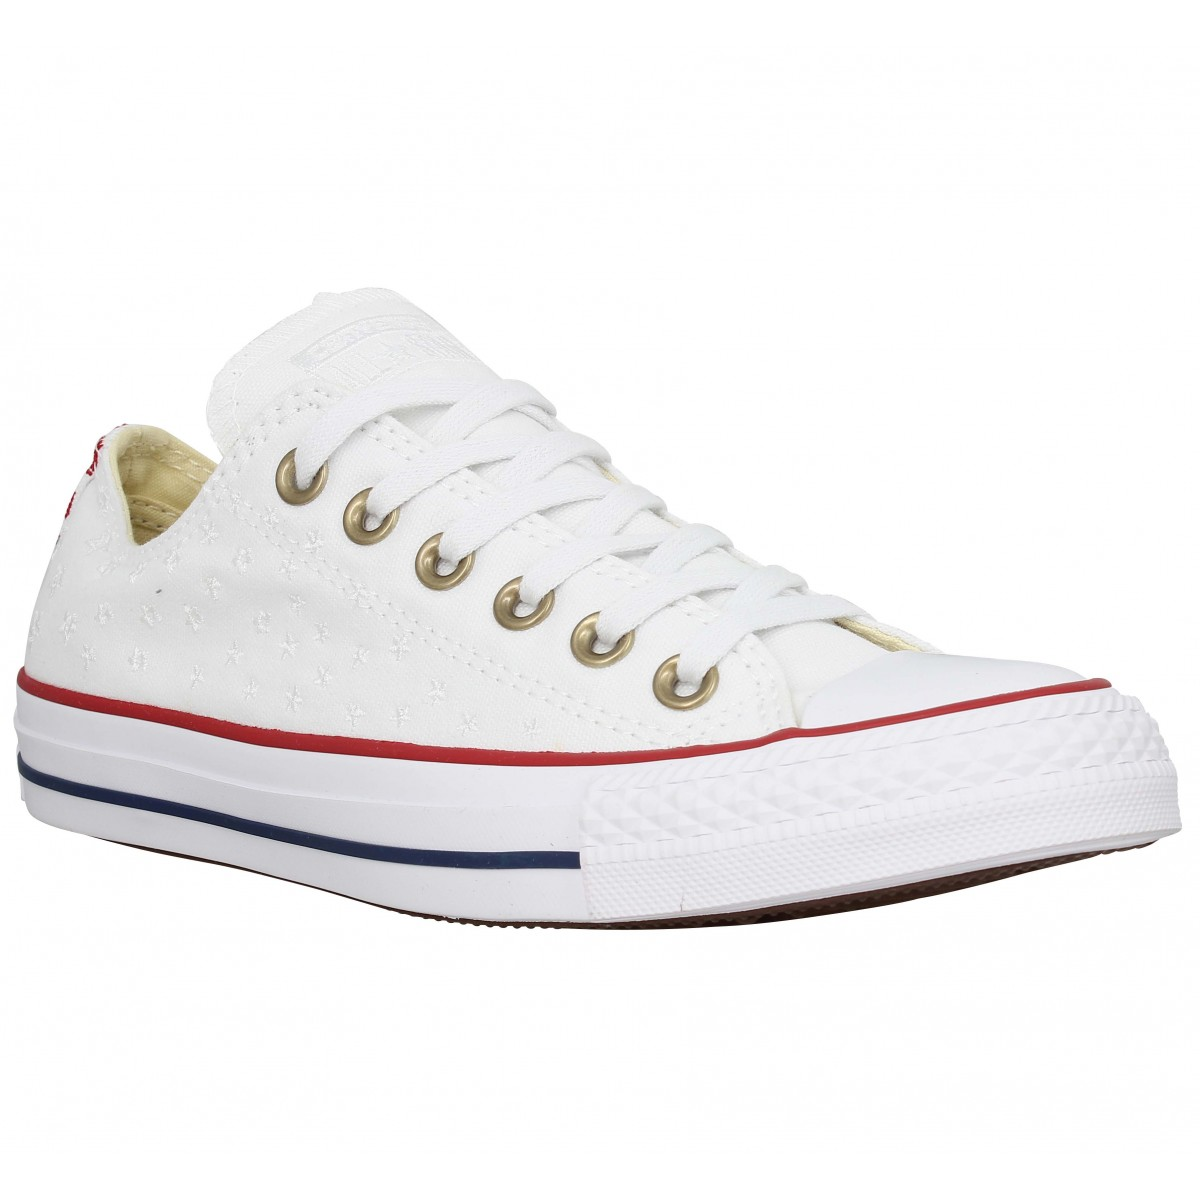 soldes converse chuck taylor all star toile brodee femme blanc femme fanny chaussures. Black Bedroom Furniture Sets. Home Design Ideas